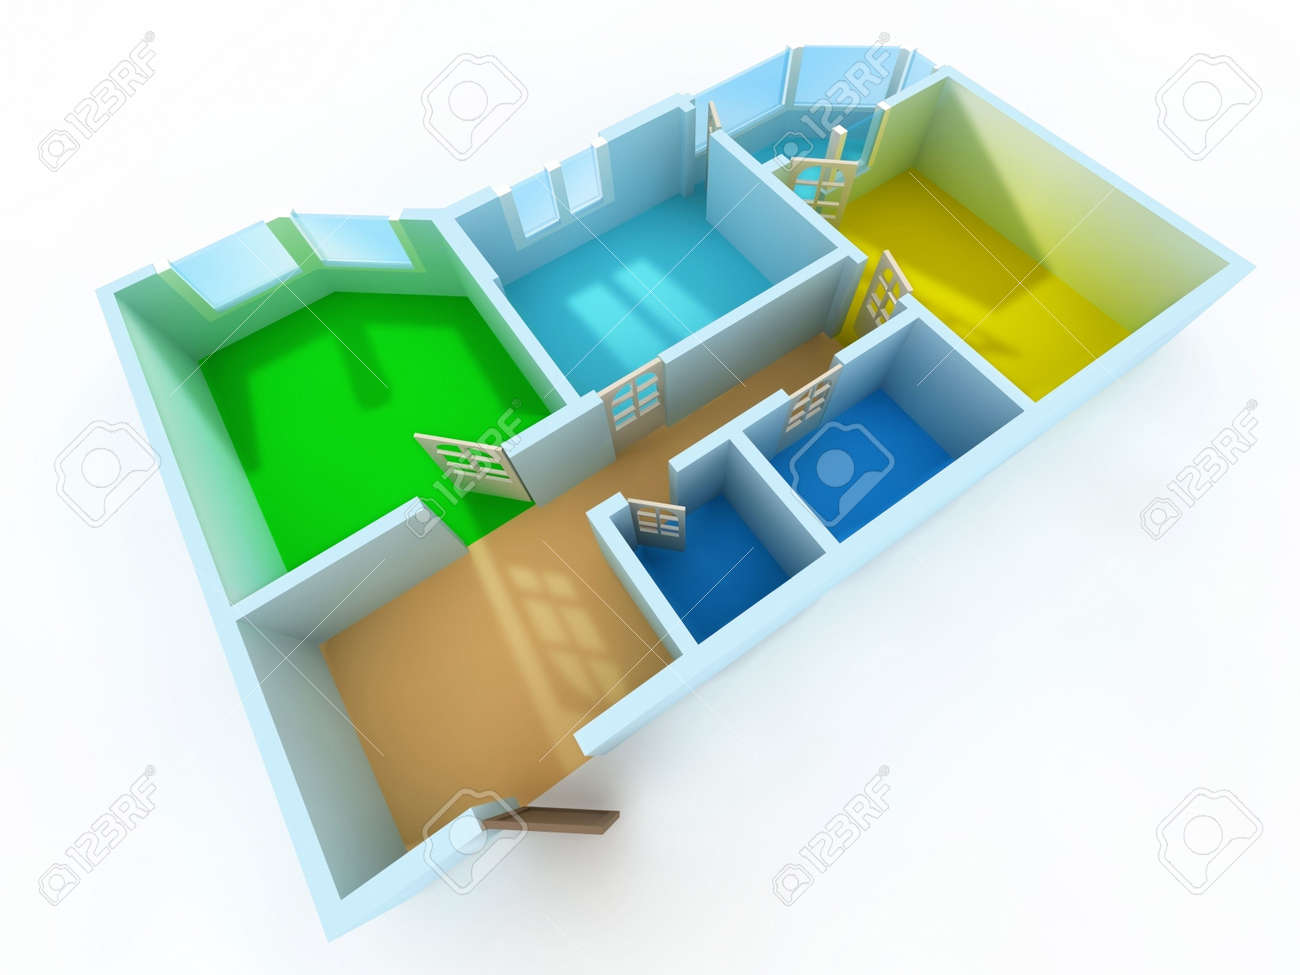 Schematic three-dimensional model of an apartment Stock Photo - 2412844